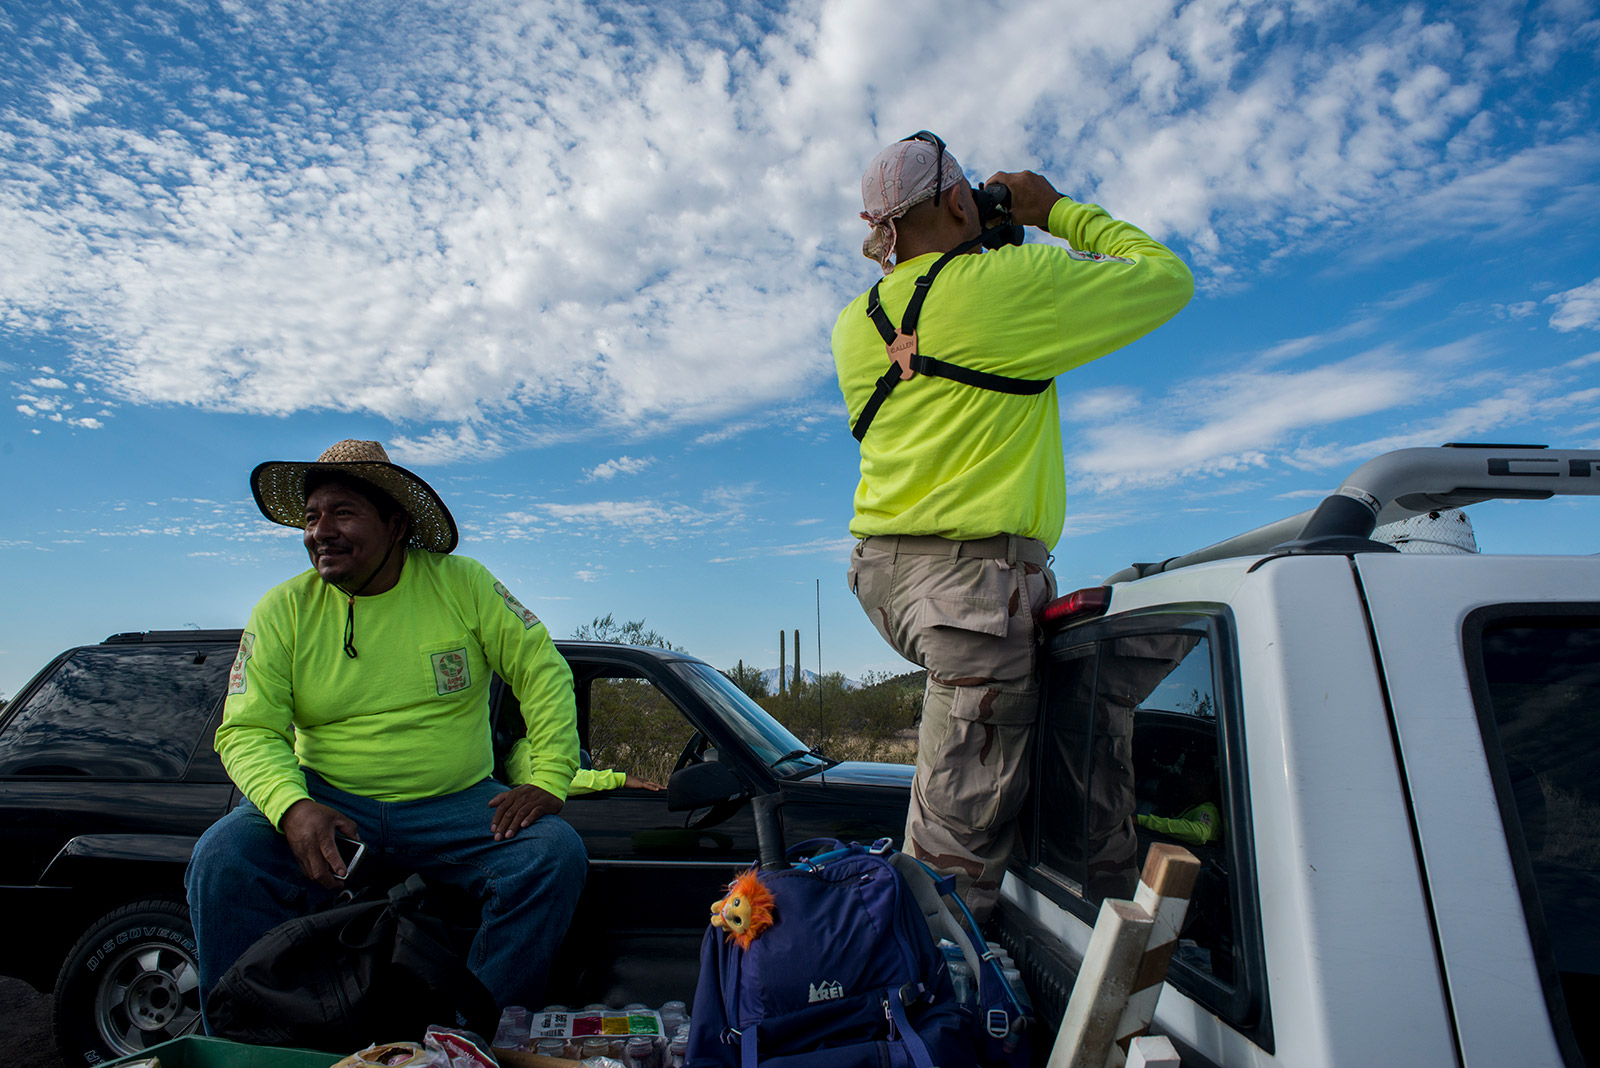 Julio Agustìn, left, waits in the back of a pickup as Pedro Fajardo peers into the desert with binoculars from the parking lot of the Organ Pipe Cactus National Monument visitors center in Arizona on Aug. 26, 2017. <em>(Brandon Quester/inewsource)</em>